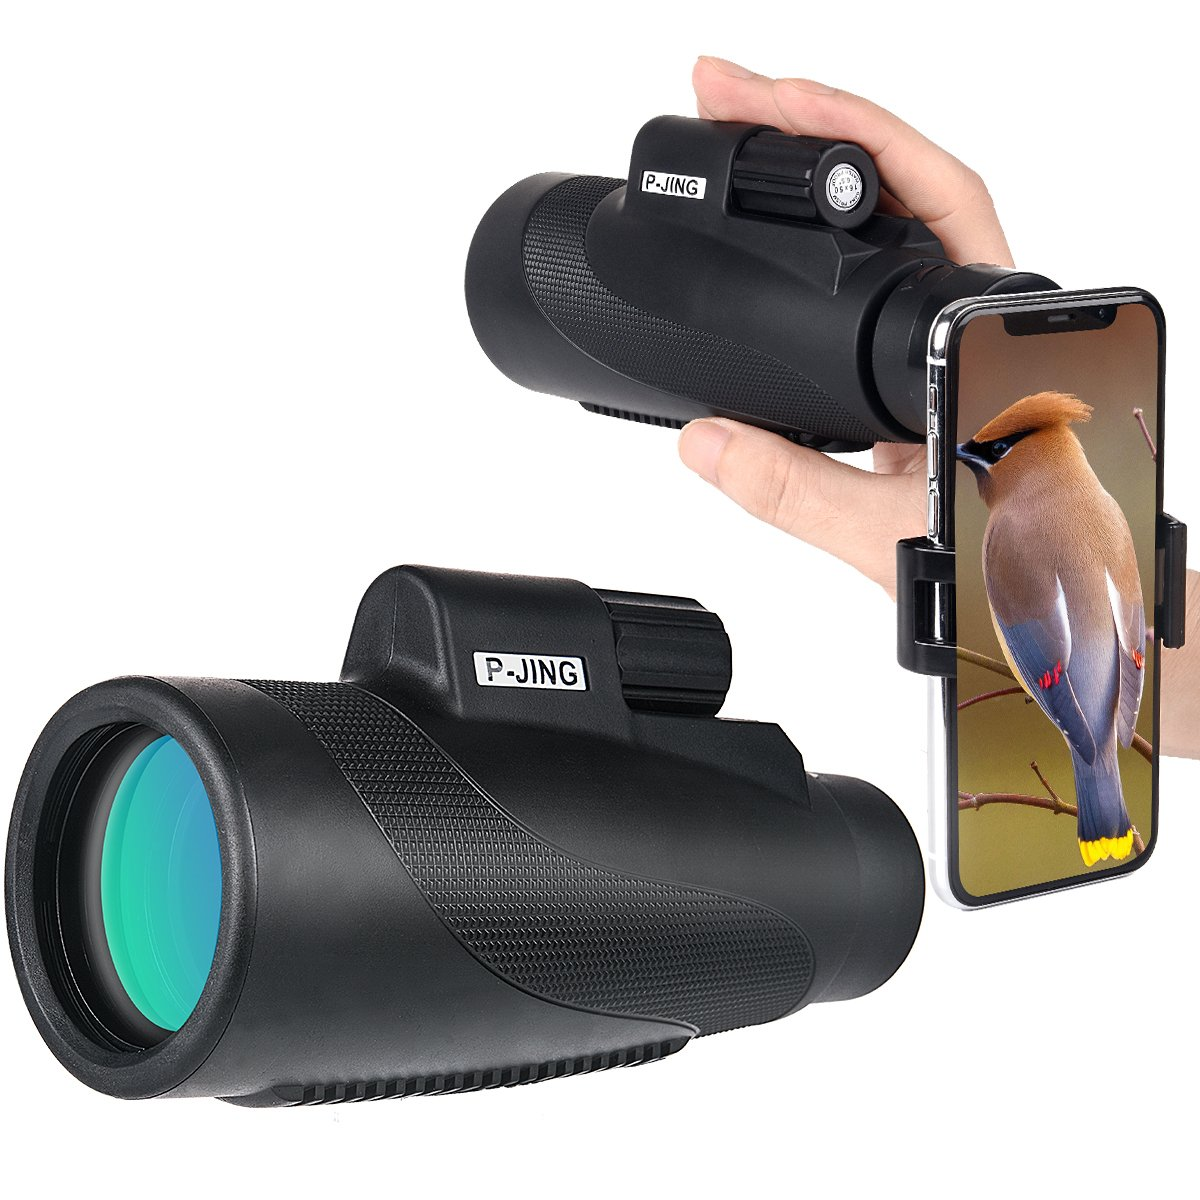 Monocular Telescopes 16X50 High Powered Monocular with Quick Smartphone Holder - Waterproof Fog-proof Shockproof Scope -BAK4 Prism FMC for Bird Watching Hunting Camping Travelling Wildlife Secenery by